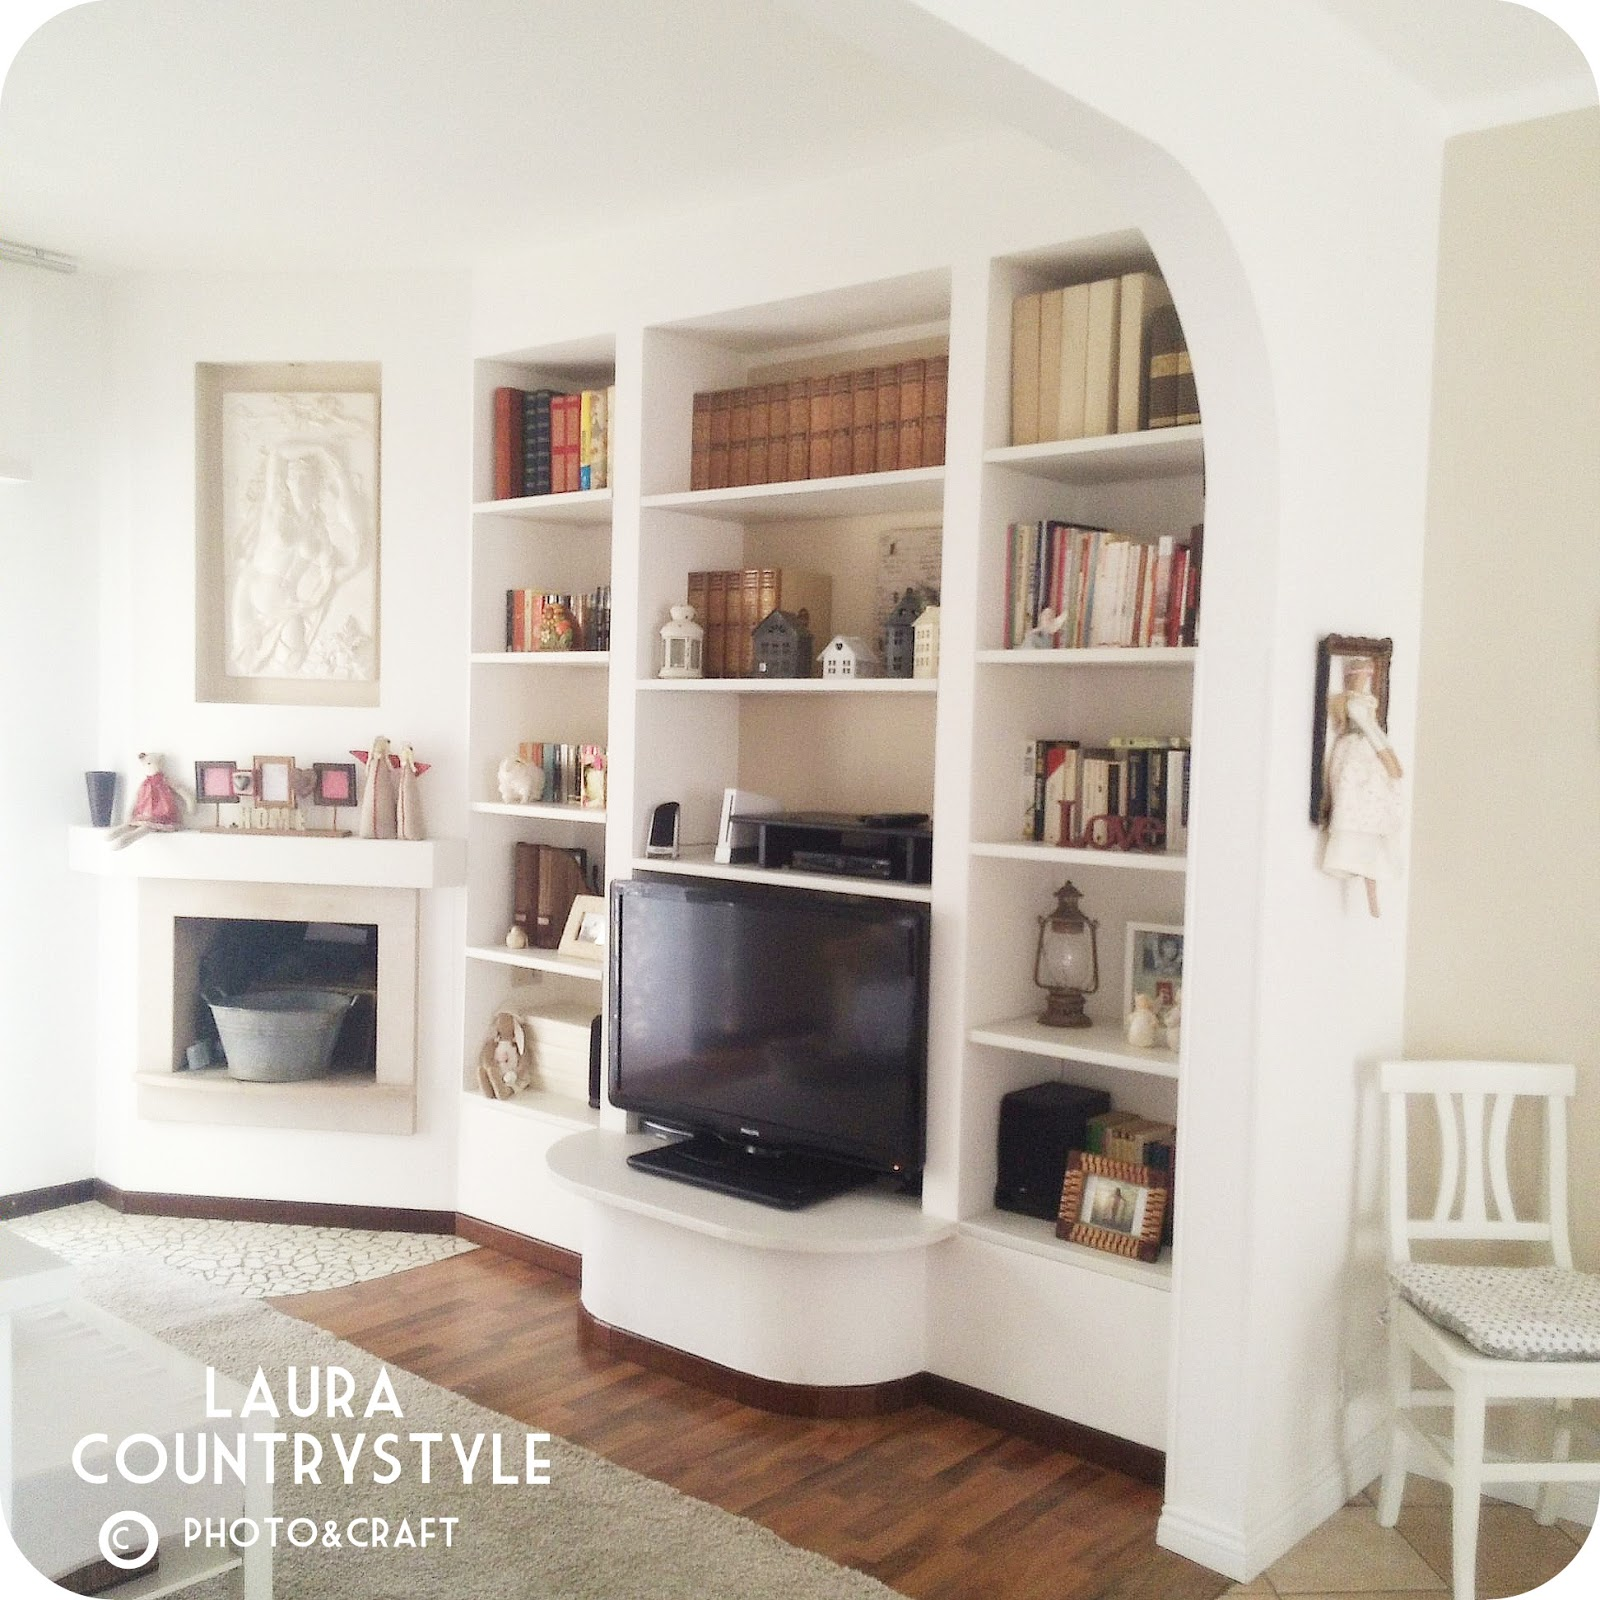 Country style: Regarding my home: restyling living room